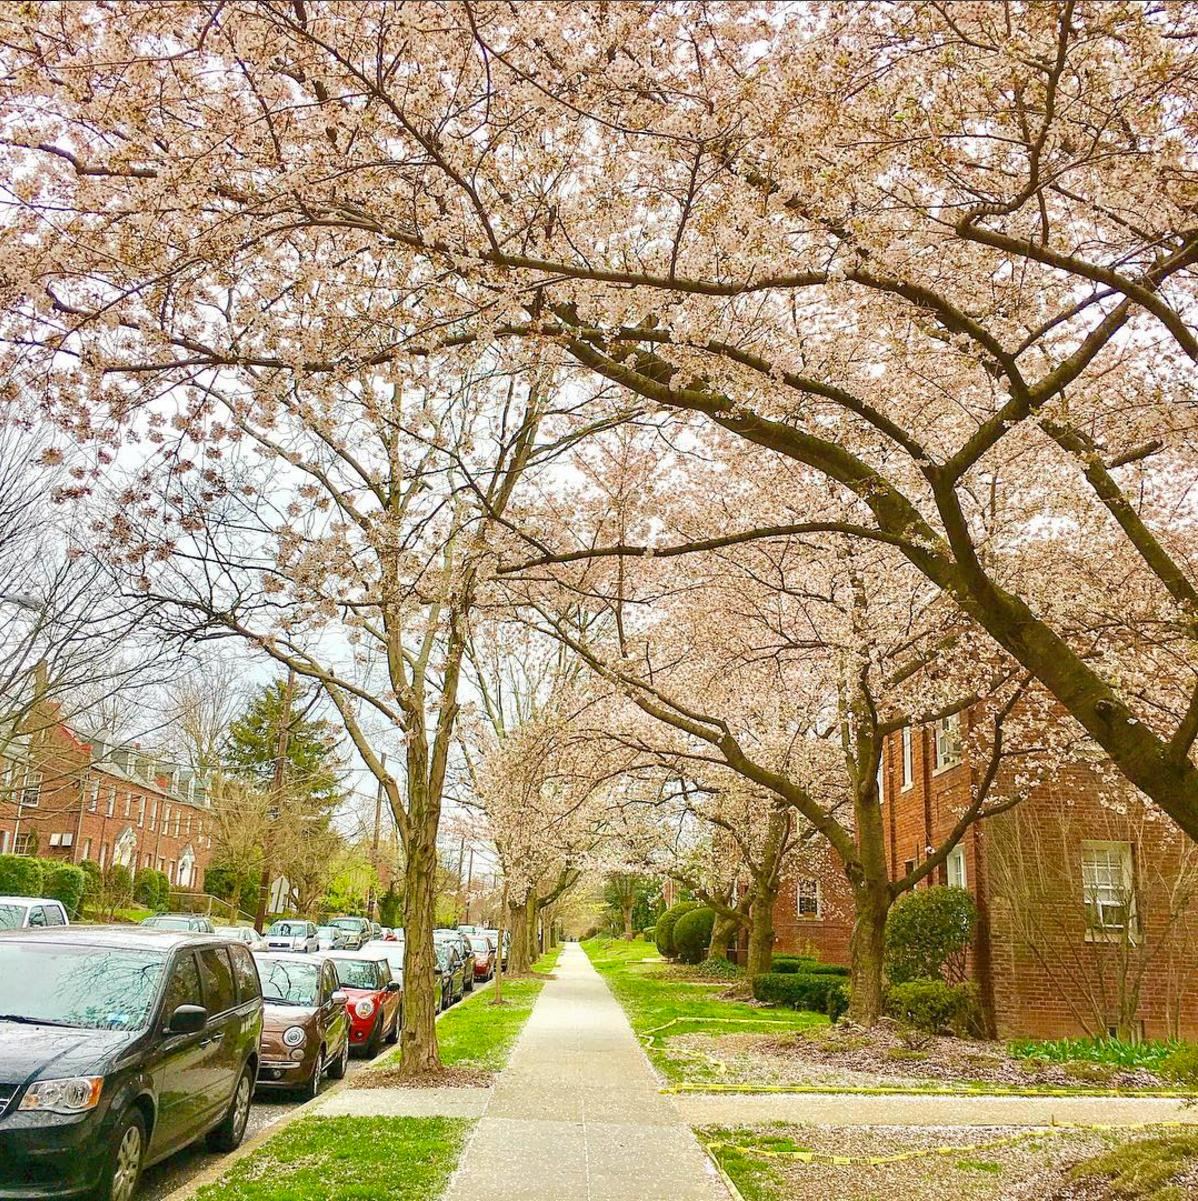 Glover Park is just uphill from Georgetown, but this neighborhood is a hidden gem and the locals can't get enough of its quiet forests and picturesque homes. Here are some of our favorite Instagram pics from one of the cutest 'hoods in D.C. (David Rose/@david__rose)